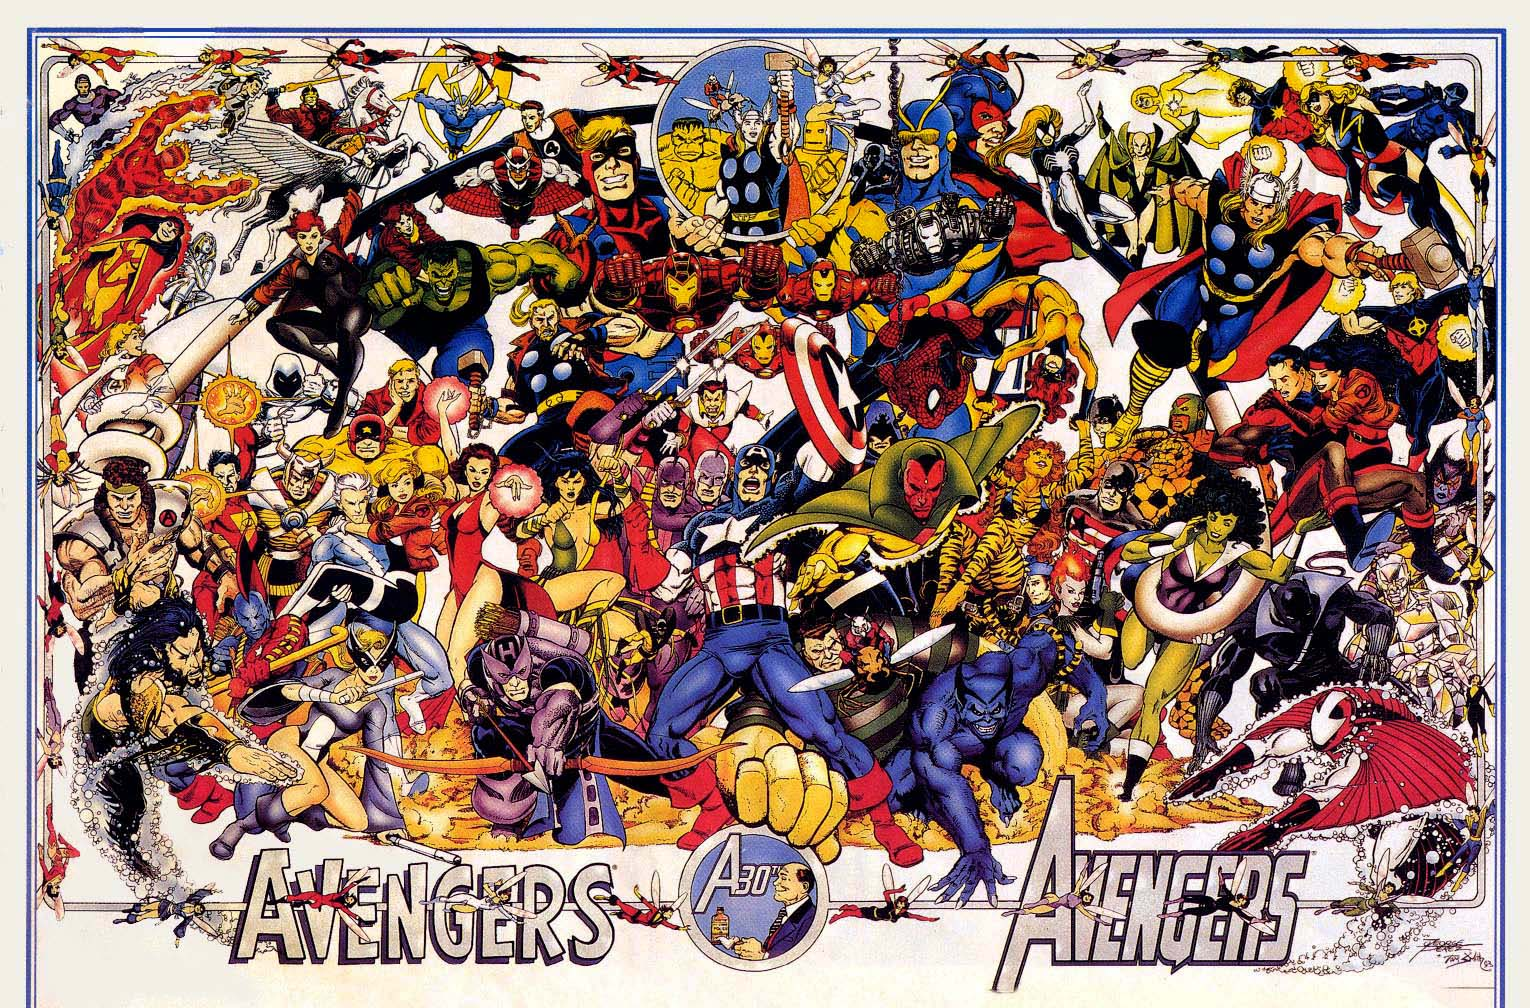 Possible Marvel Avengers recruits for future movies?